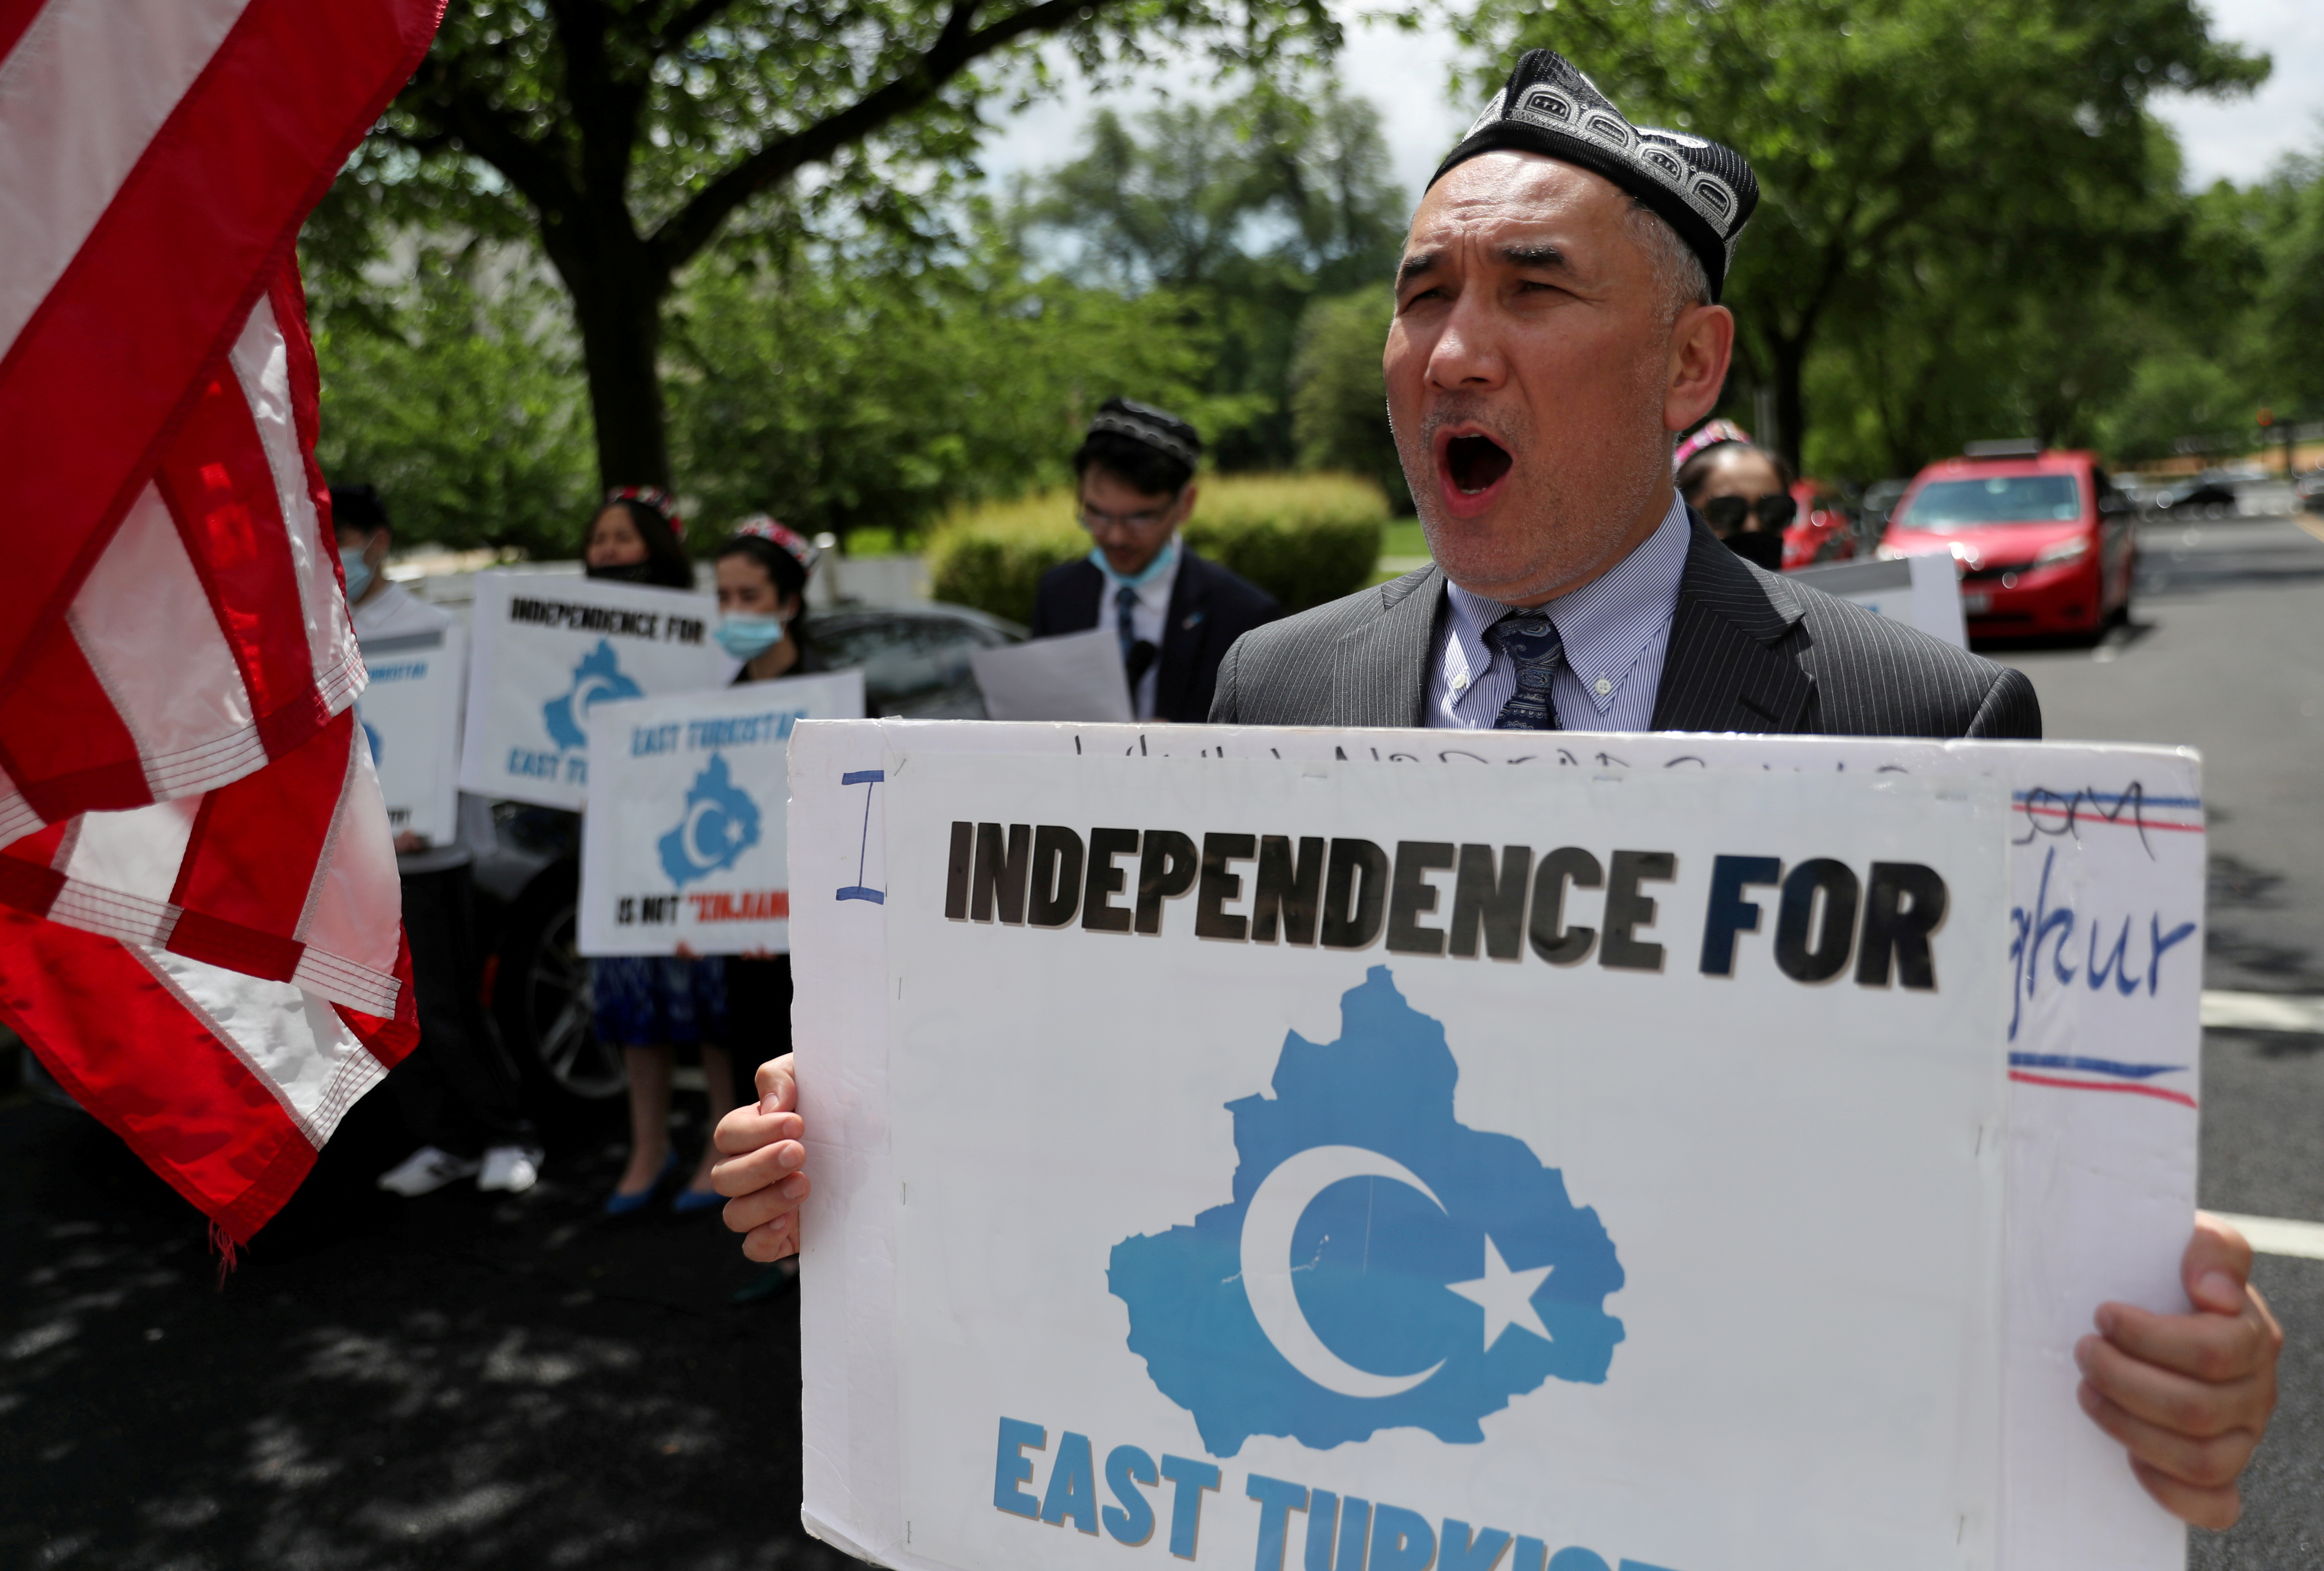 Demonstrators, including Aziz Sulayman, hold a protest in front of the U.S. State Department to commemorate Uyghur Doppa Day and to urge the U.S. and the international community to take action against China's treatment of the Uyghur people in the East Turkistan (Xinjiang) region, in Washington, U.S. May 5, 2021. REUTERS/Leah Millis